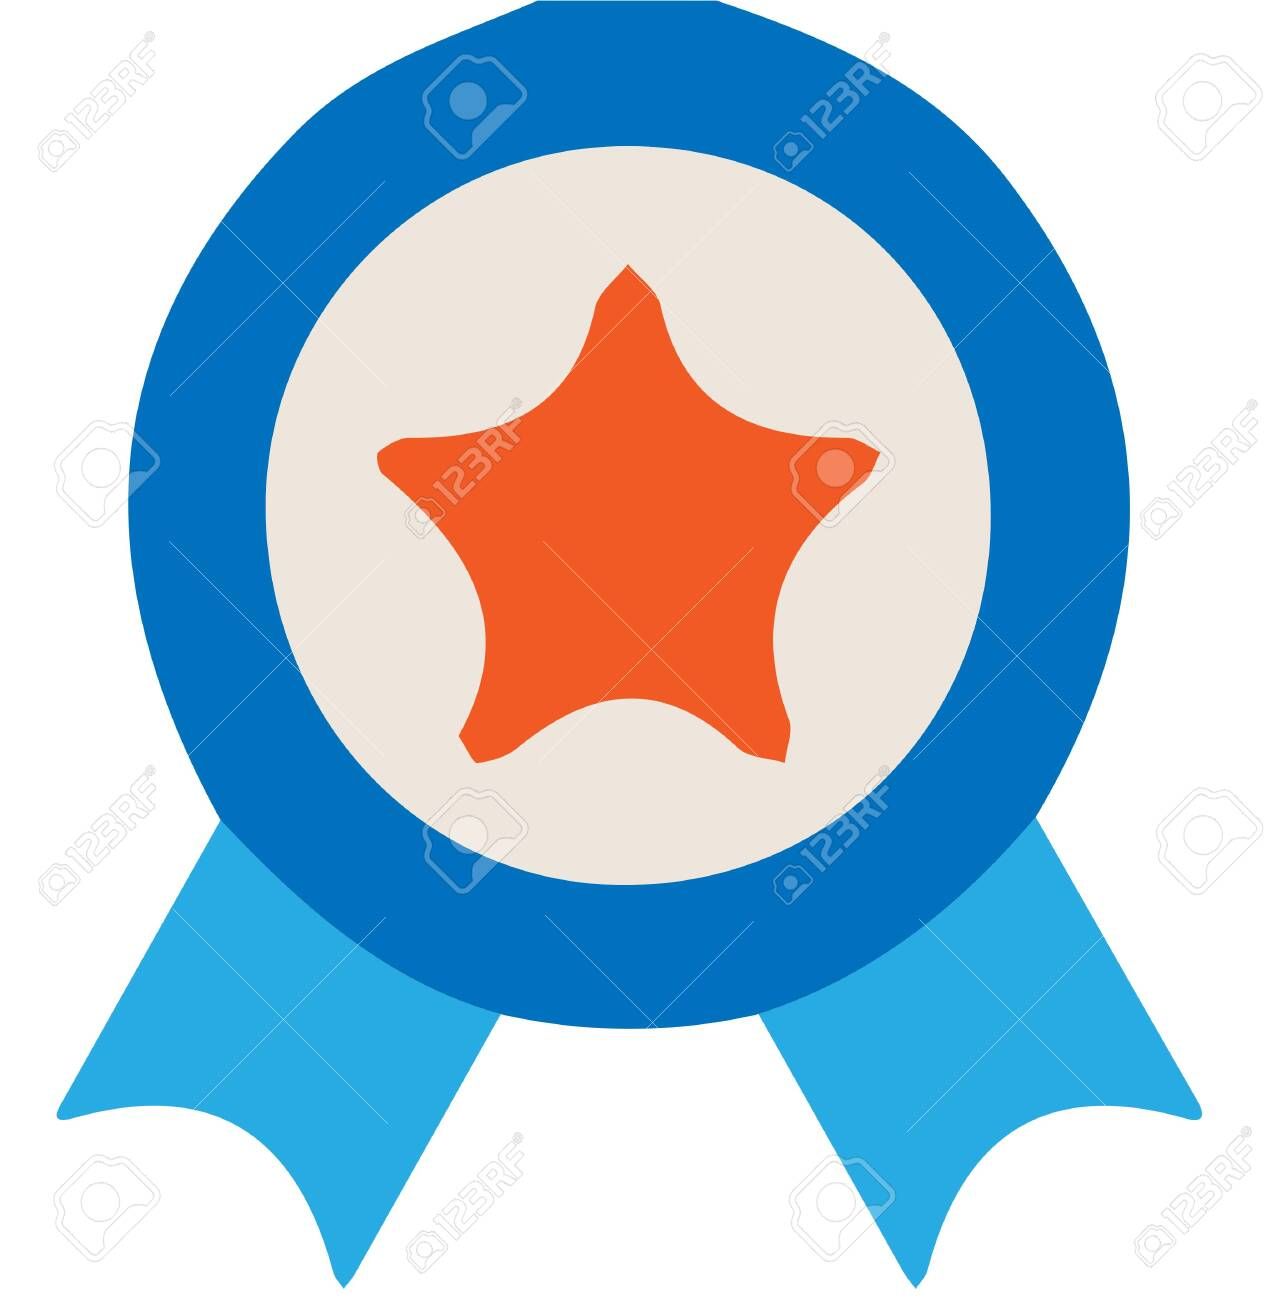 Medal of honor icon on white background - 146851635